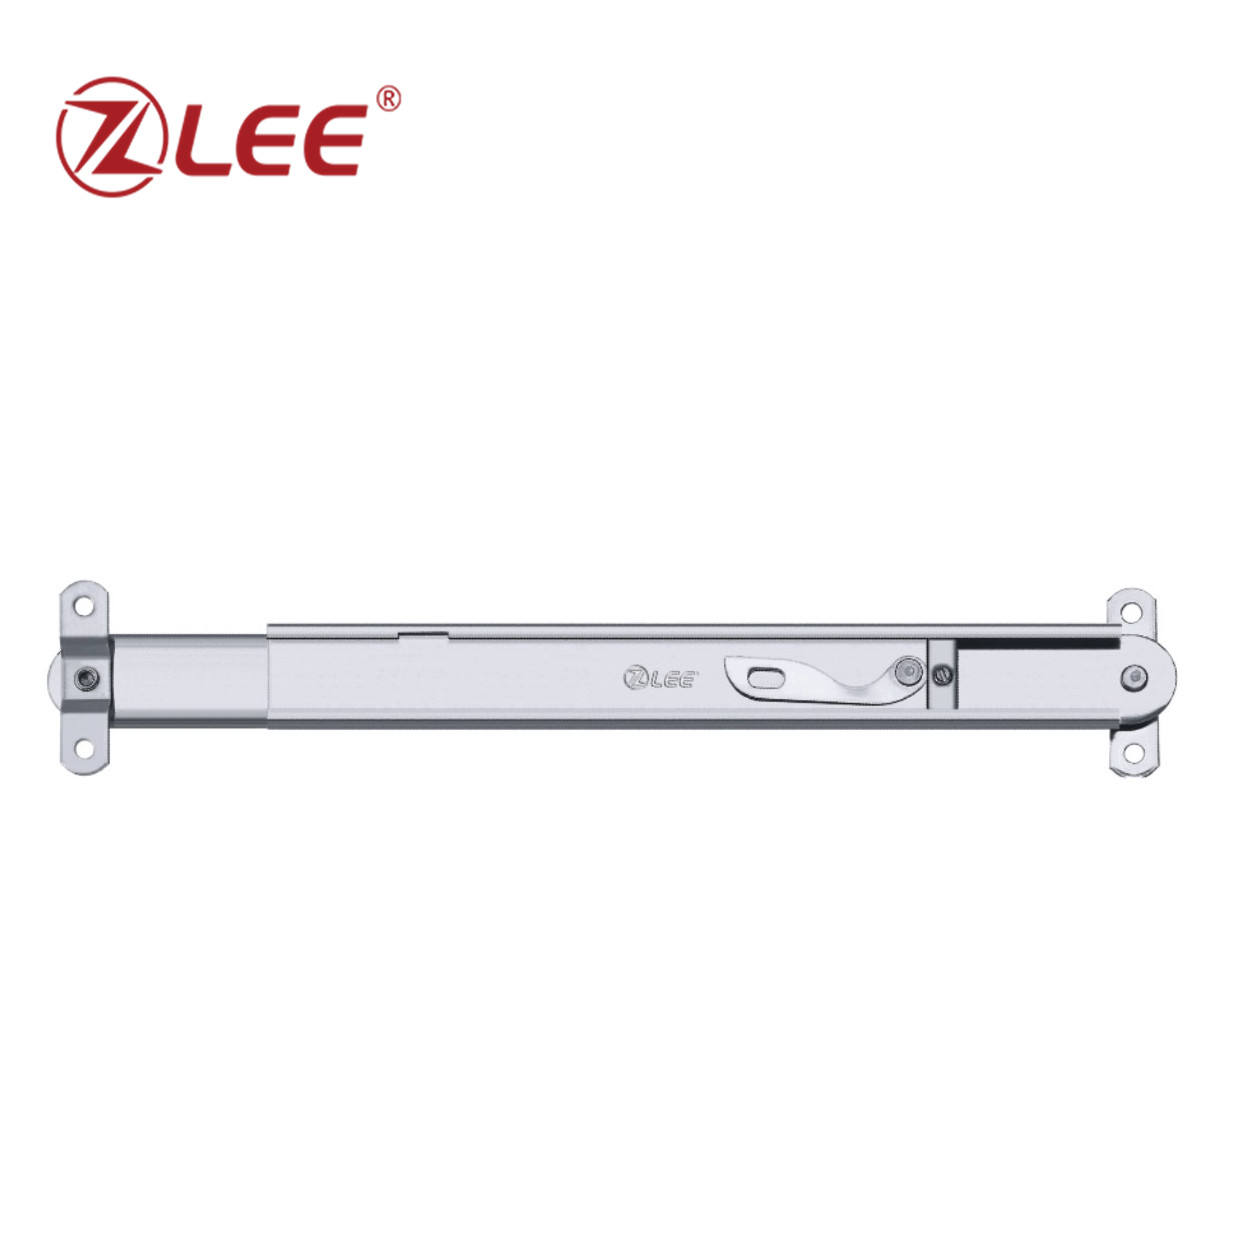 Single-point telescopic window hinge for awning hopper window